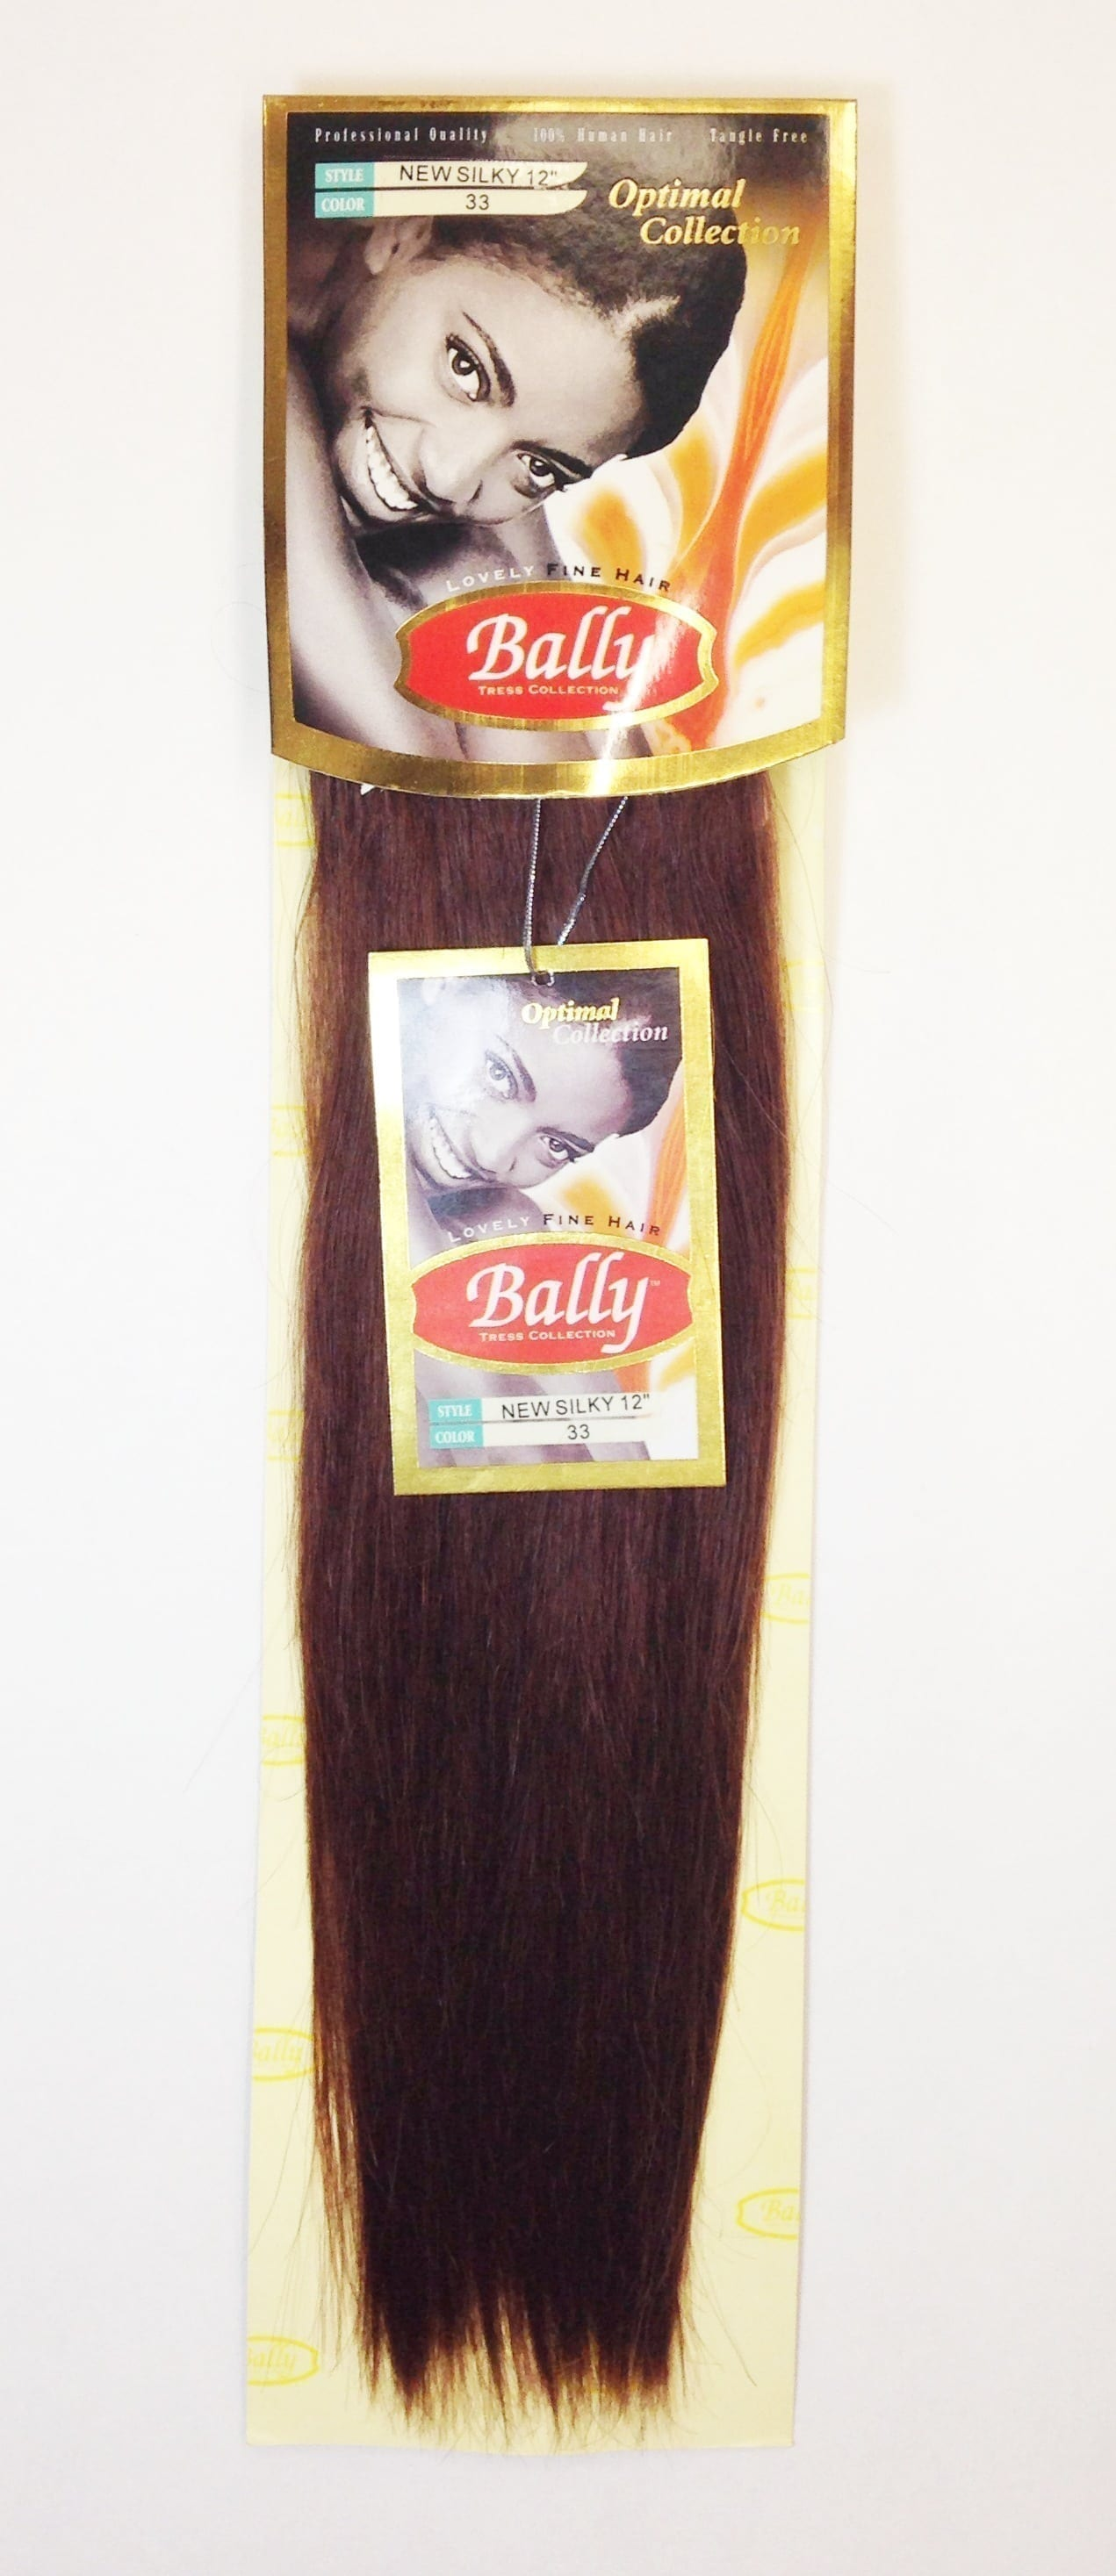 Bally 12 Extensions Border Beauty Supply